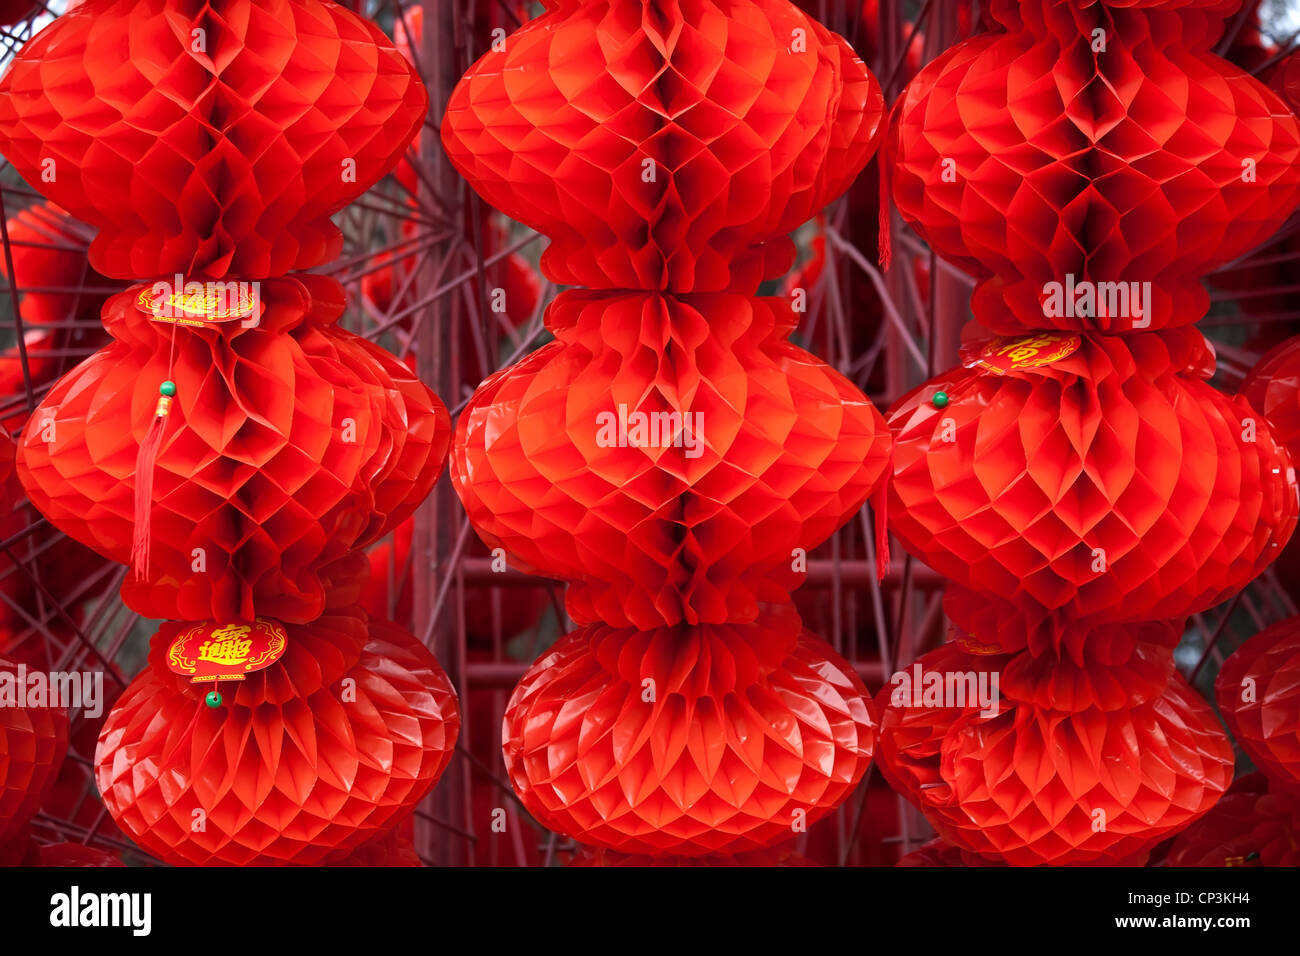 Lucky Red Lanterns Chinese Lunar New Year Decorations Ditan Park, Beijing, China - Stock Image